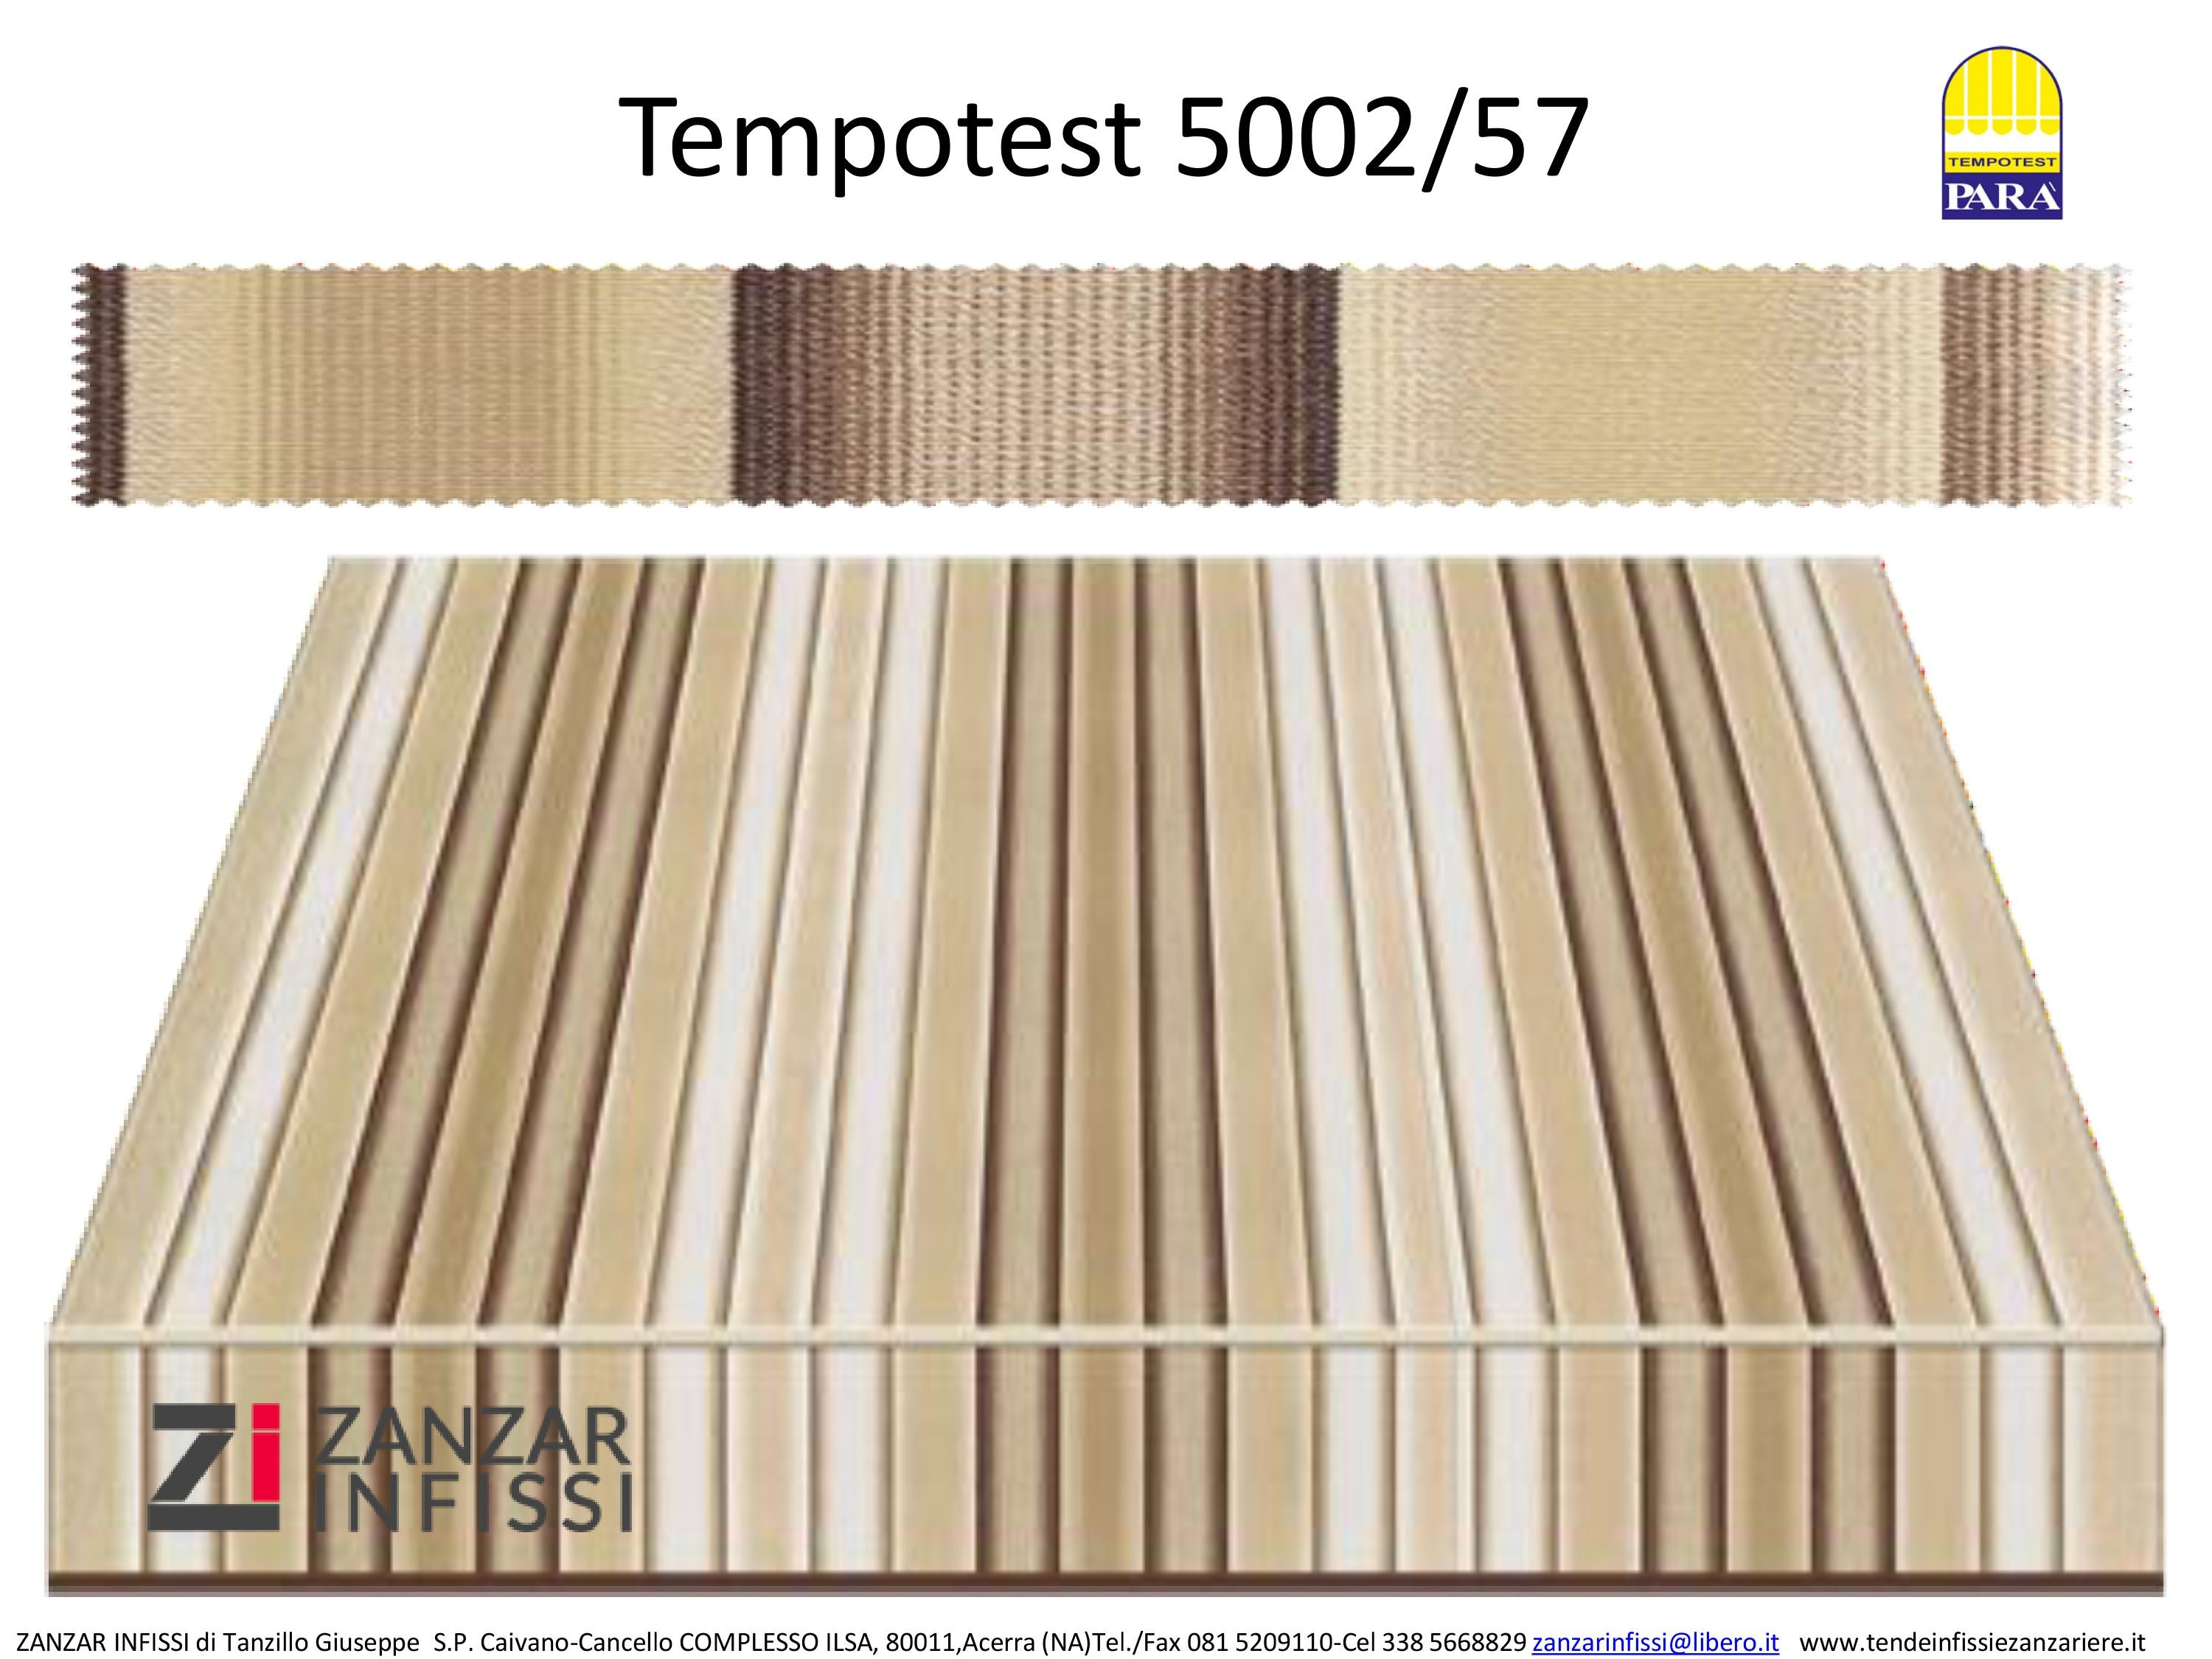 Tempotest 5002/57